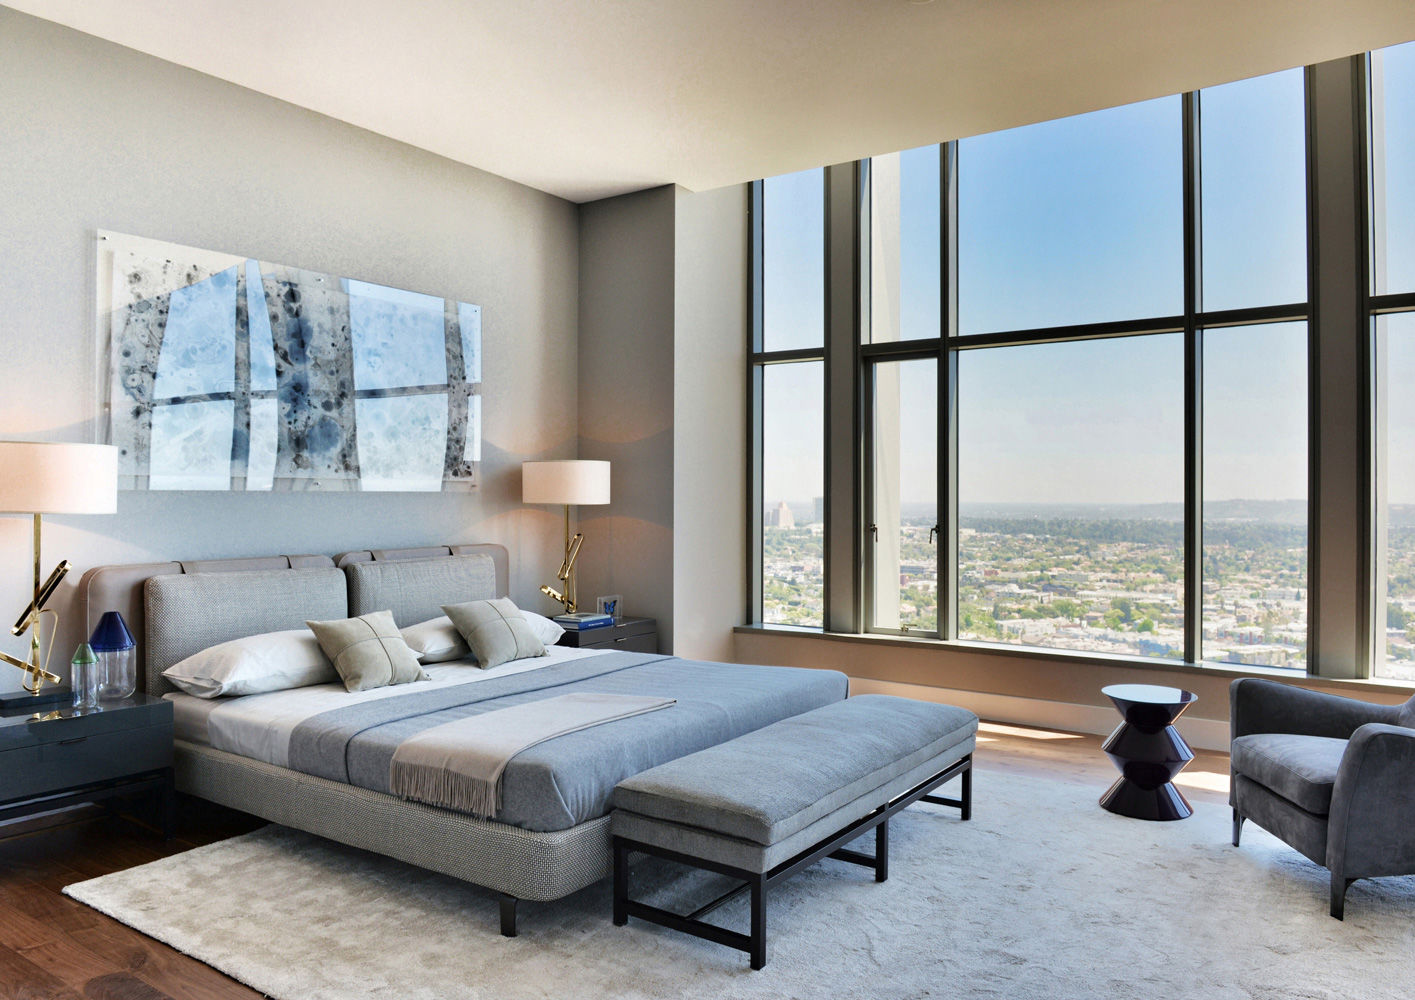 Camere Da Letto Minotti.L A Carlyle Residence Penthouse Interiors Contract It